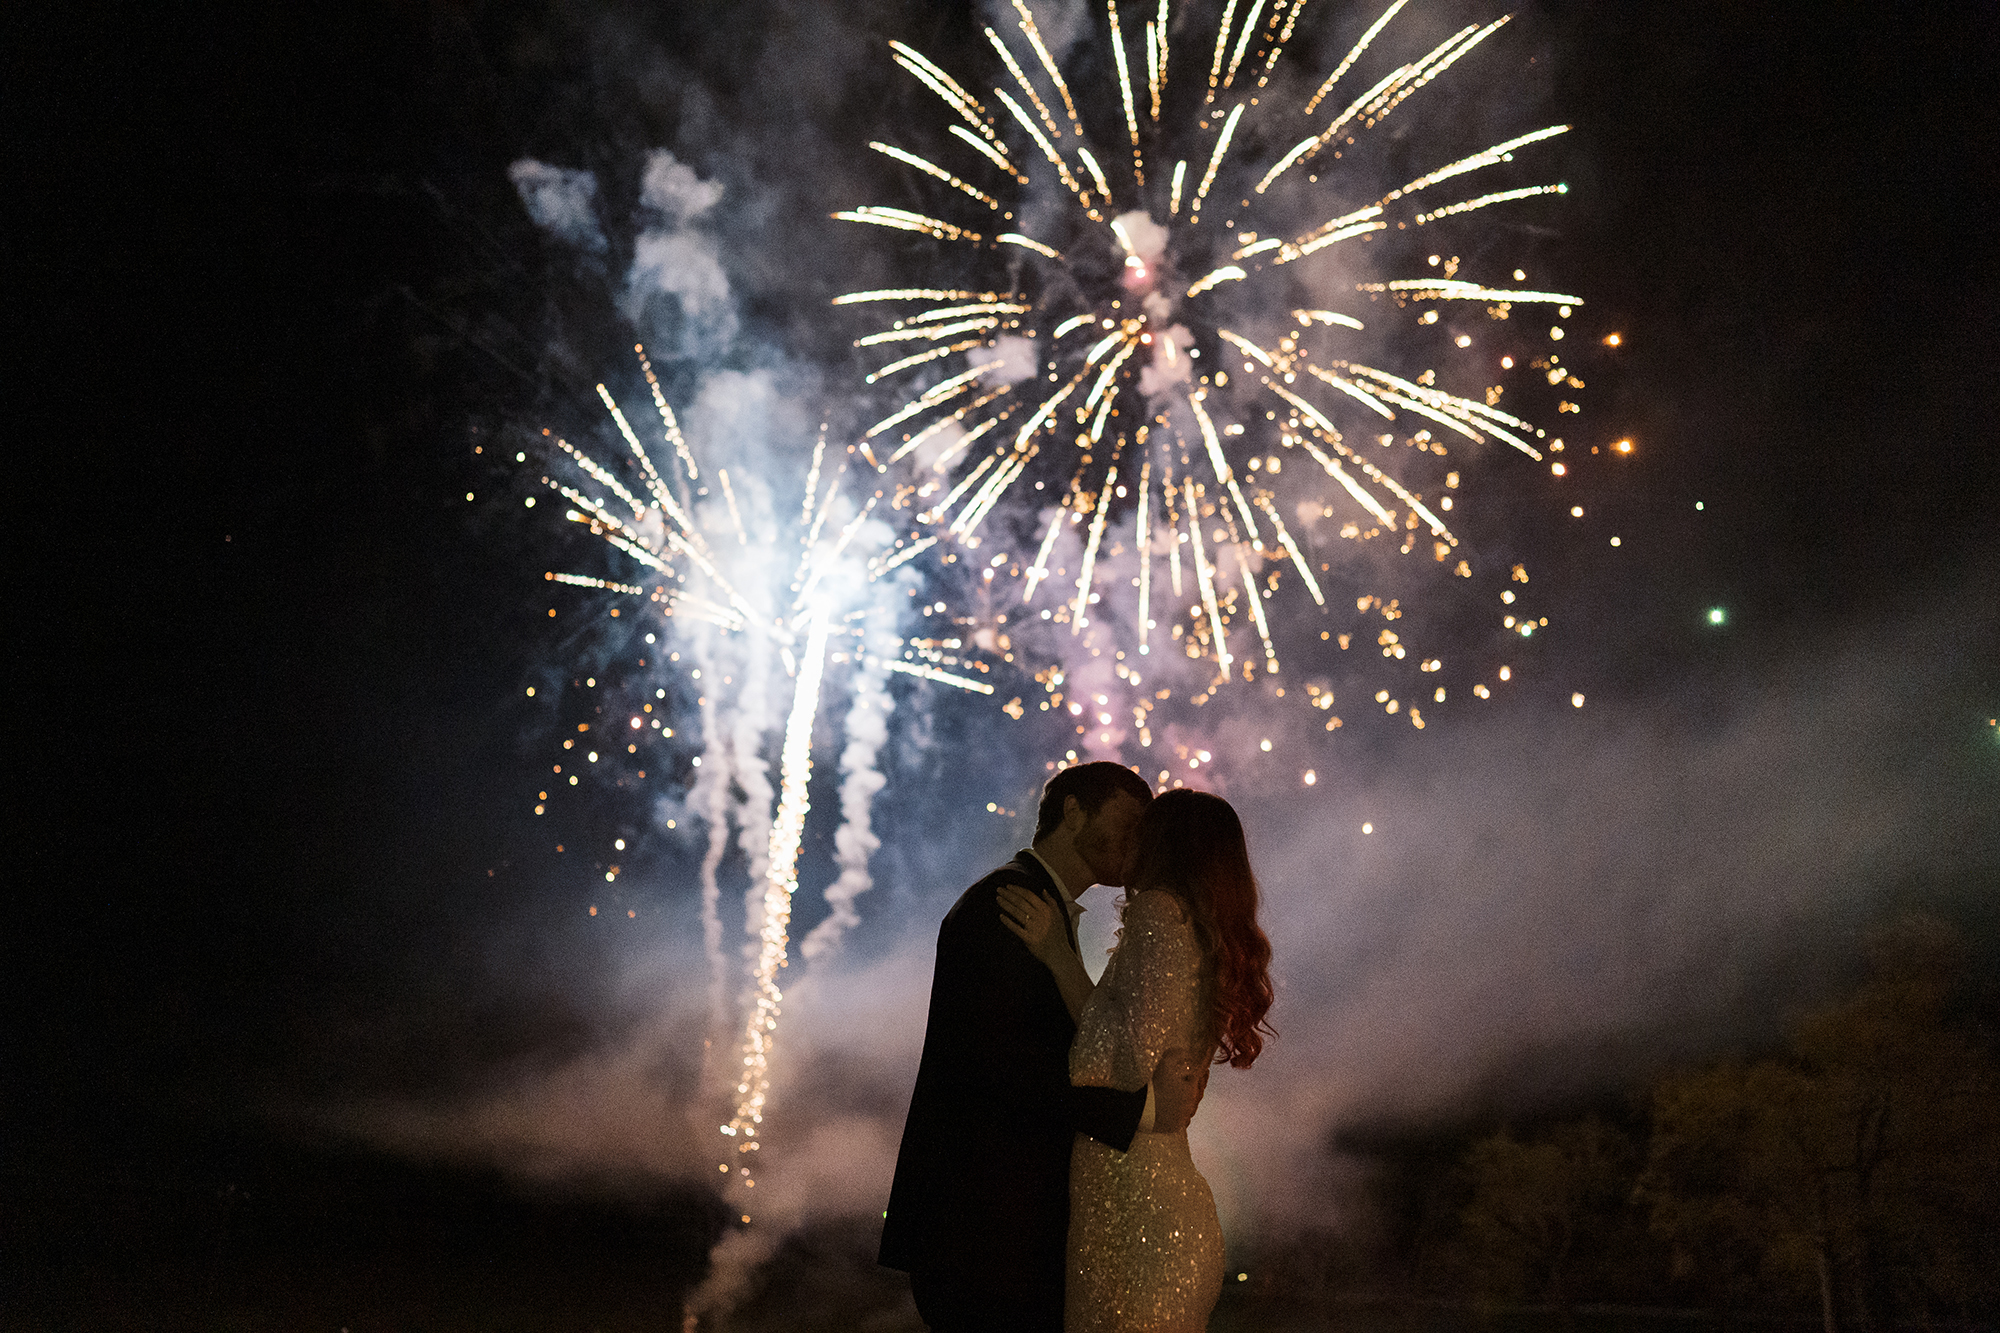 The bride and groom kiss with fireworks exploding behind them.